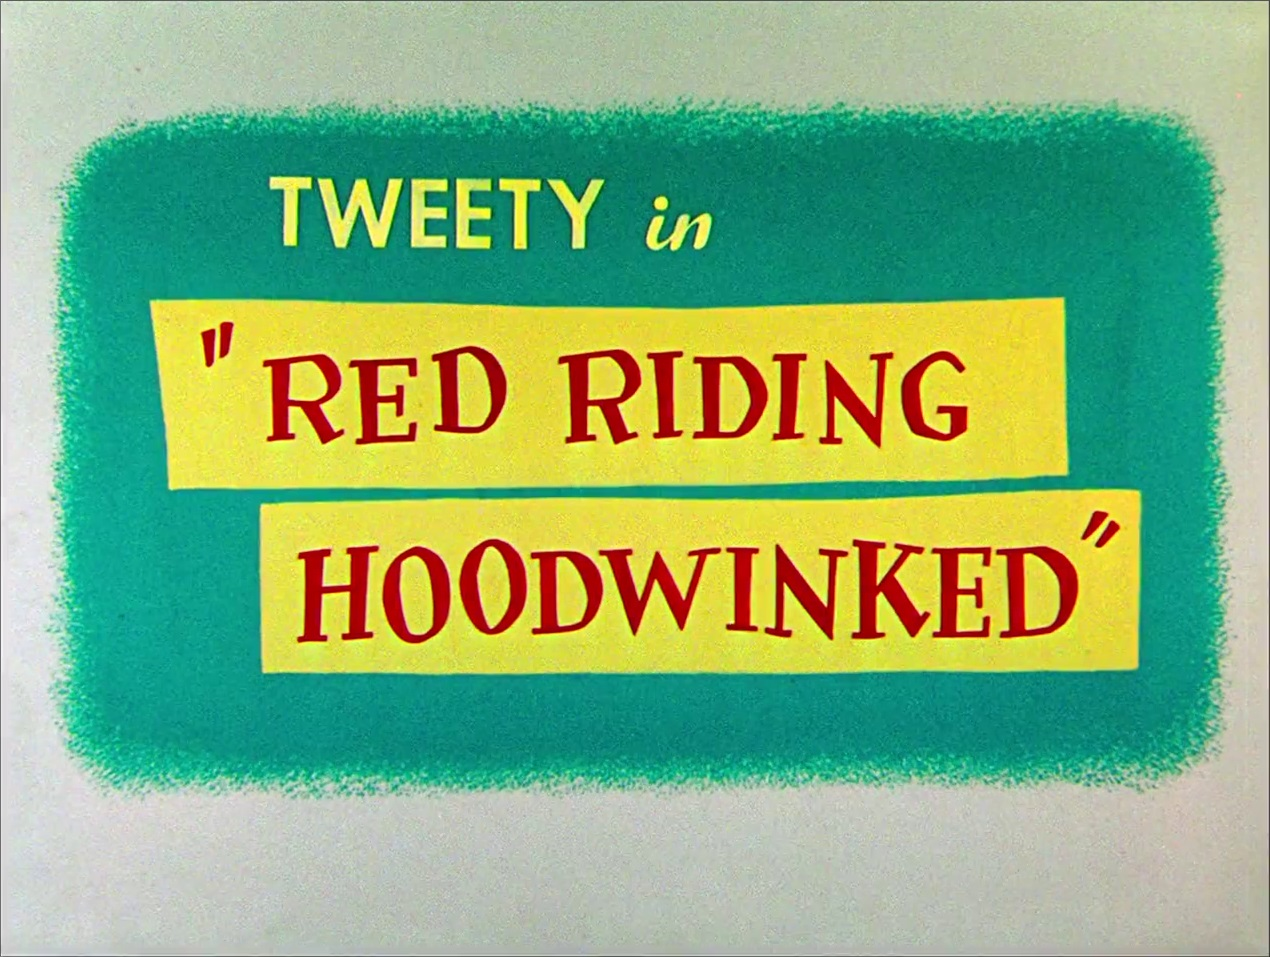 File:07-redridinghoodwinked.jpg